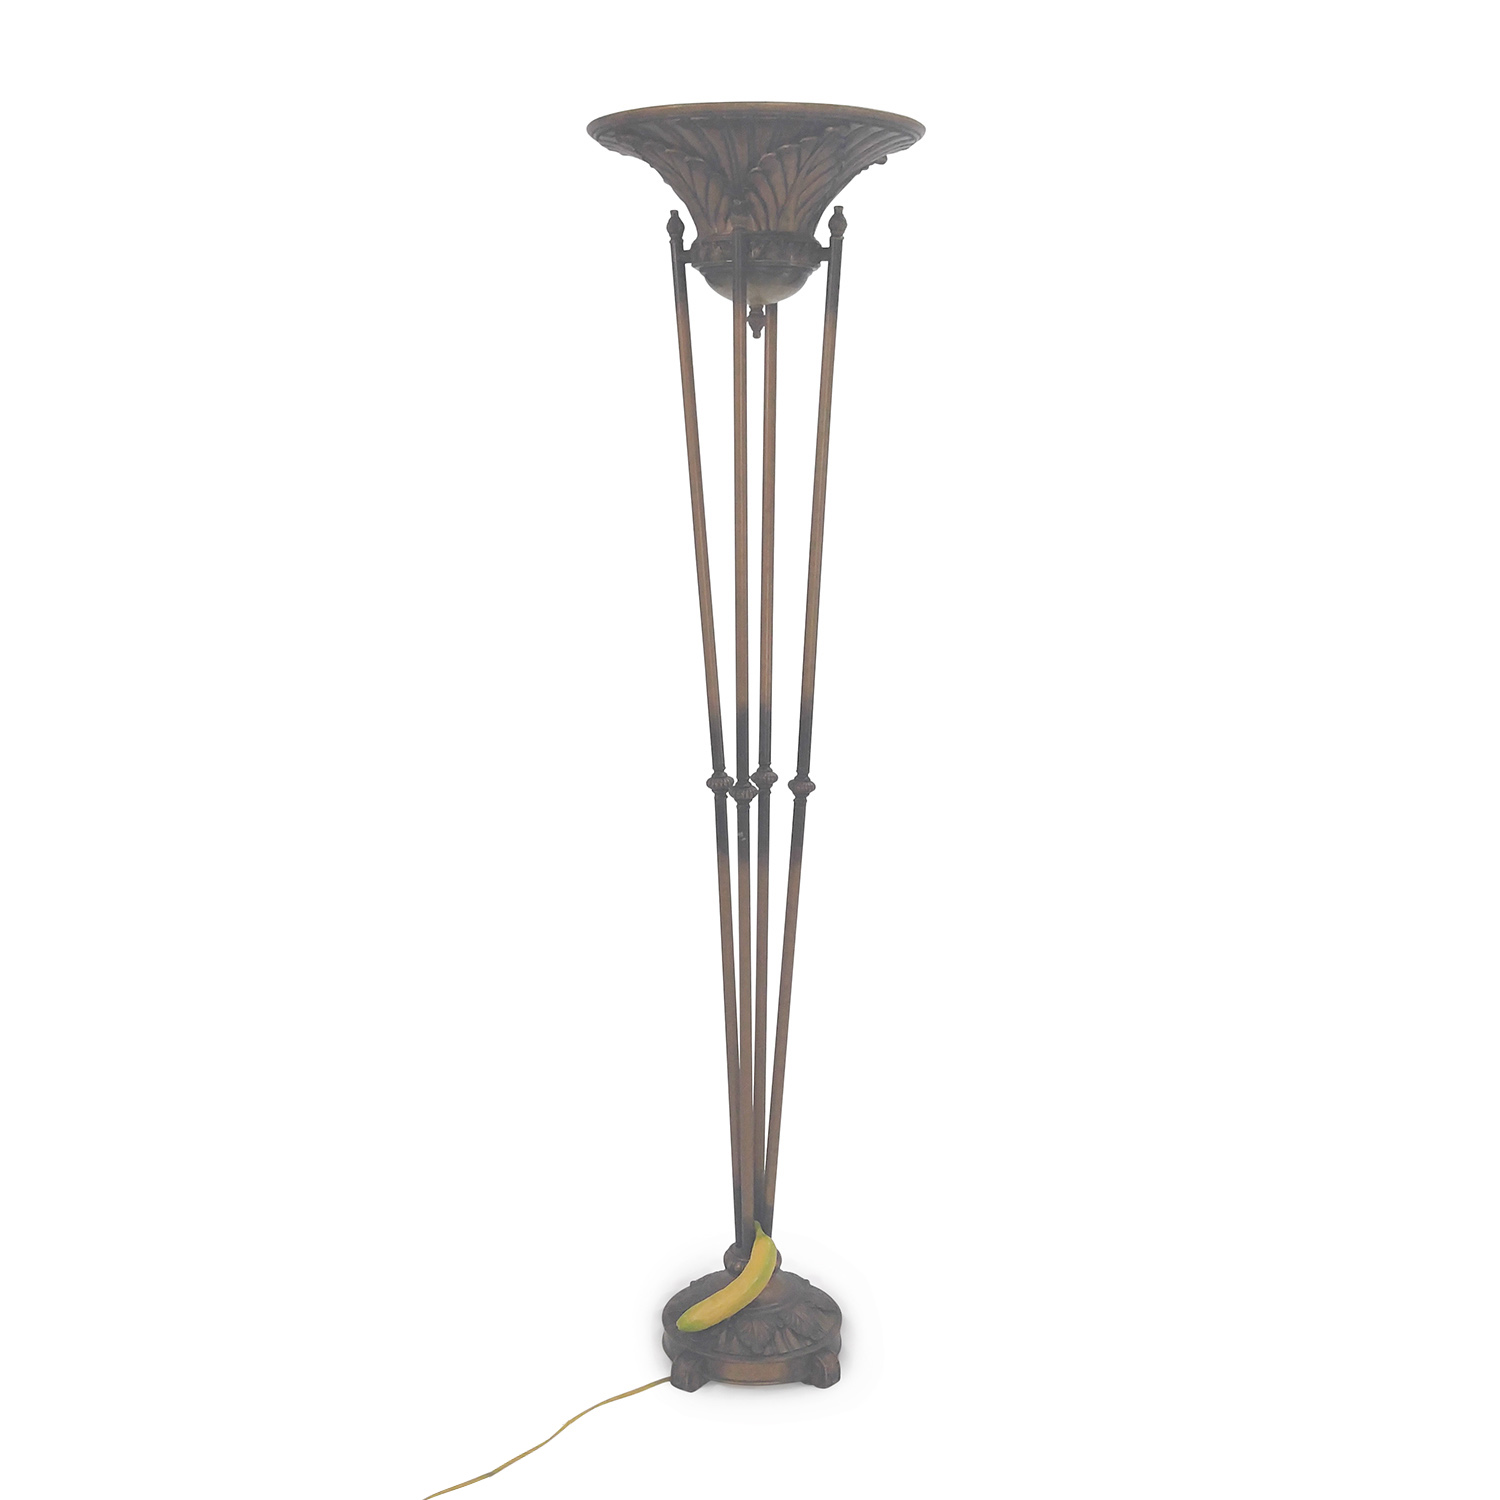 Unknown Brand Cast Iron Large Floor Lamp Gold